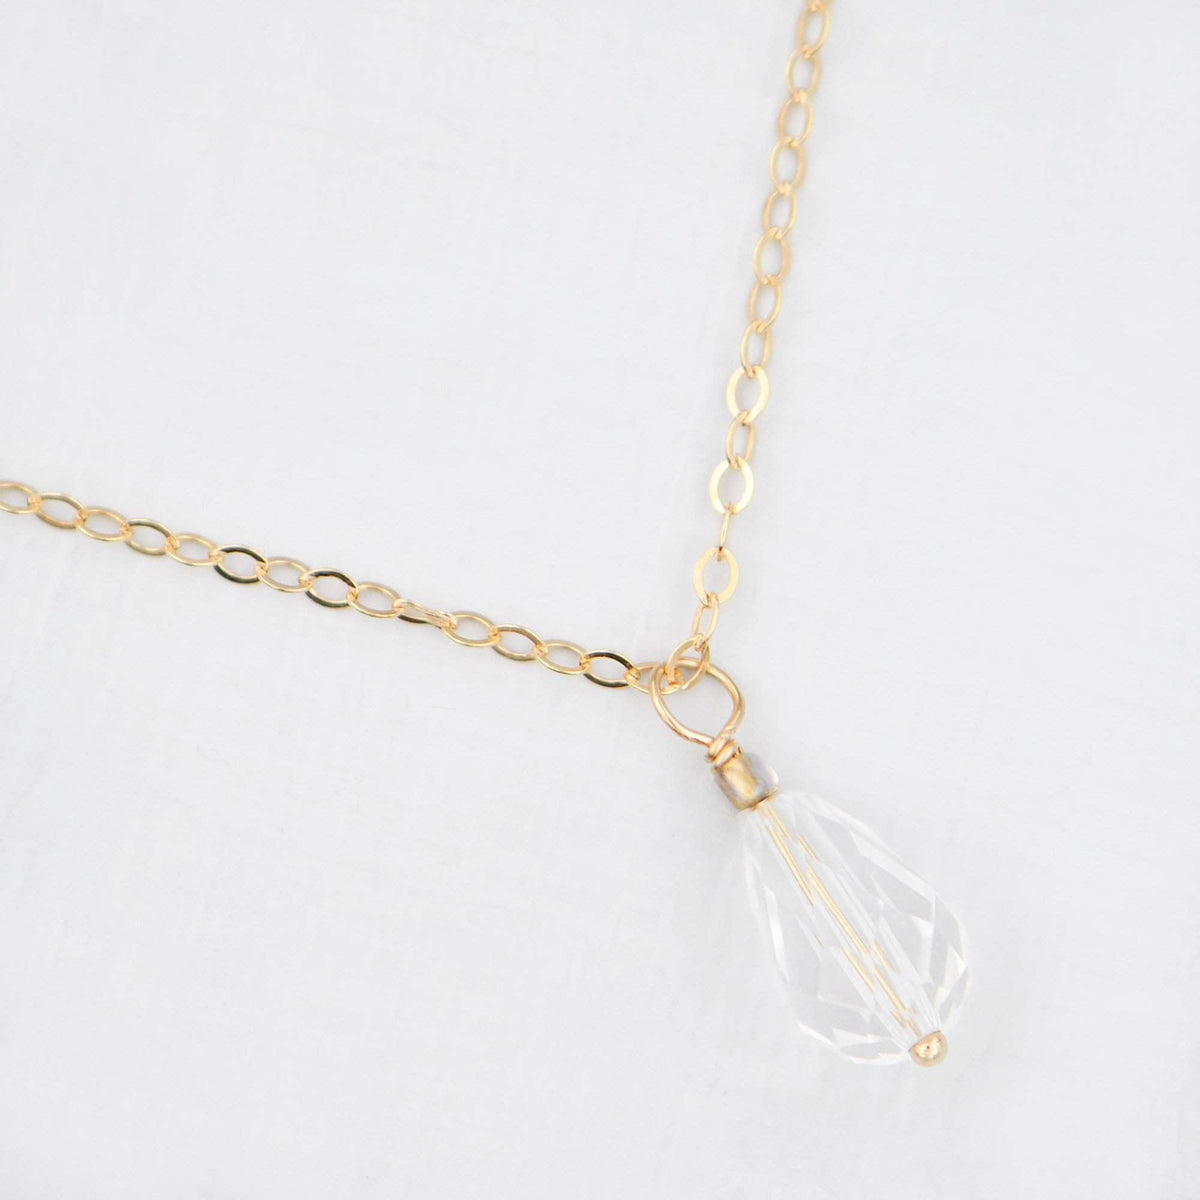 Wedding Necklace 14k gold filled Gold filled crystal back drop necklace lariat for wedding - 'Clea'